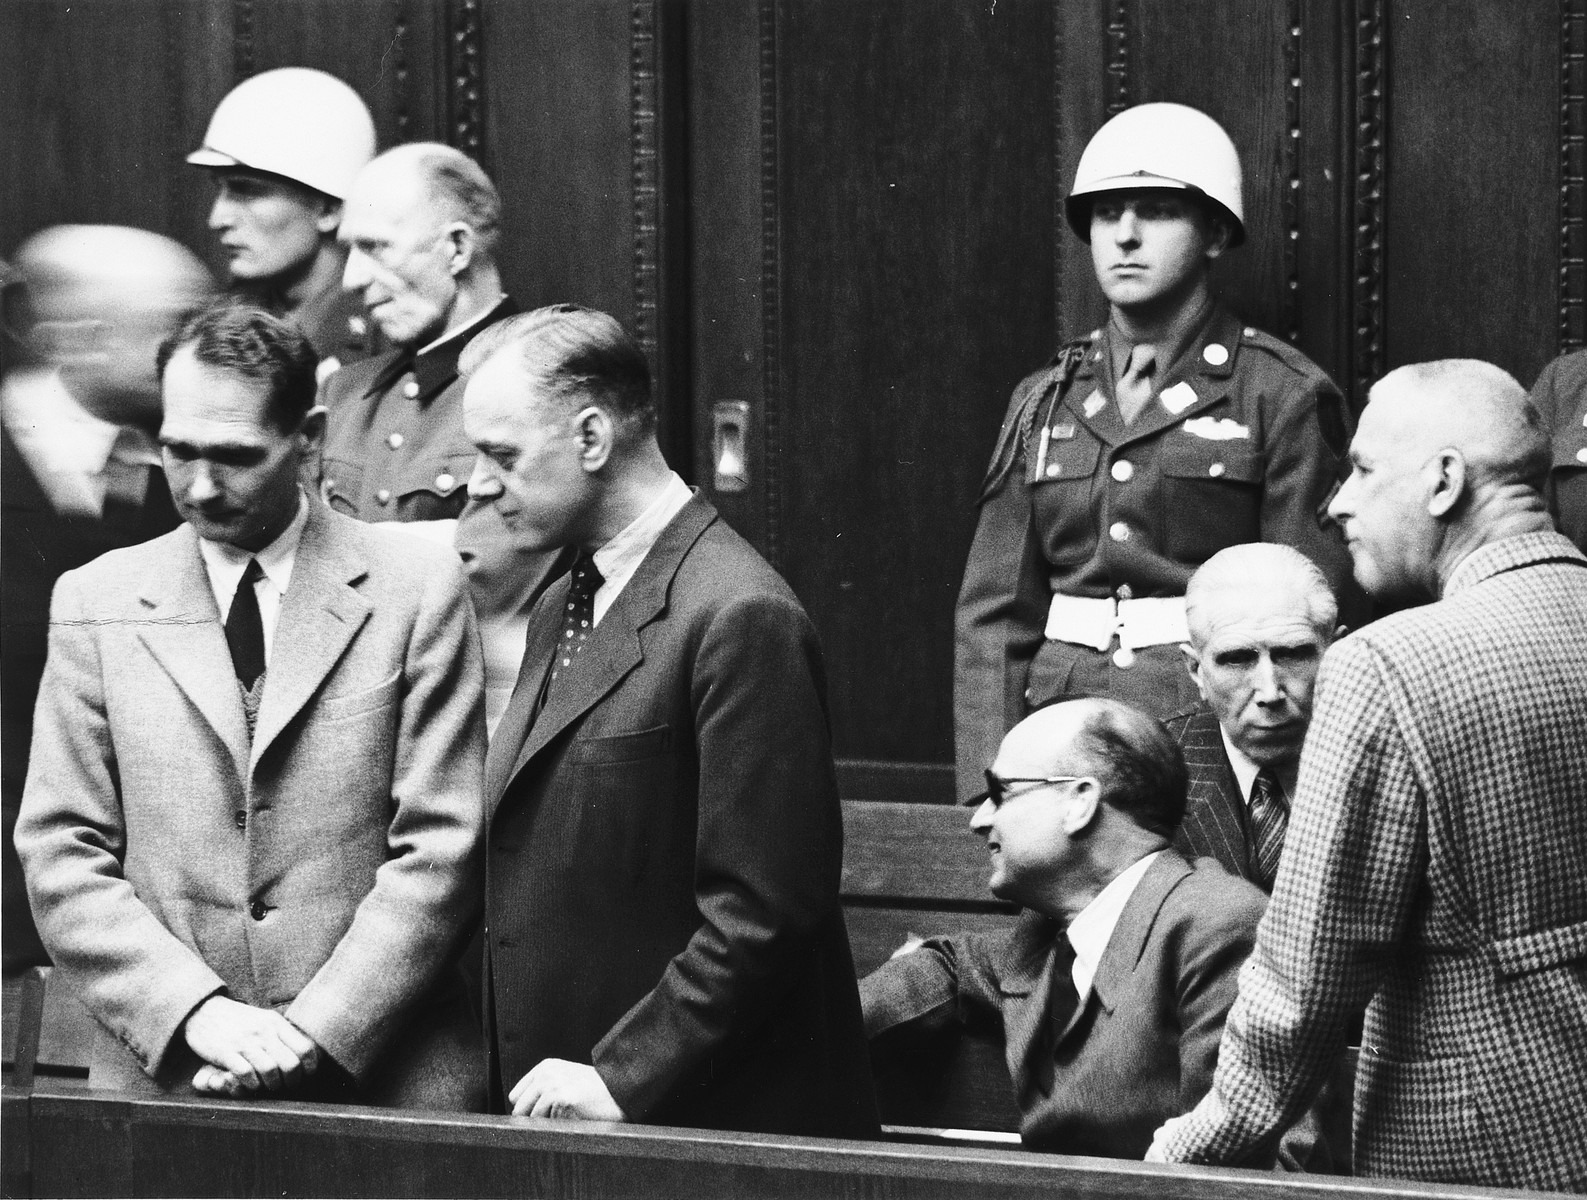 Defendants talk to each other during a break at the International Military Tribunal in Nuremberg.   Pictured from left to right are Rudolf Hess, Alfred Jodl, Alfred Rosenberg, Hans Frank, Franz von Papen and Wilhelm Frick.  Also pictured standing on the right is the donor, the American military policeman, Albert Rose.